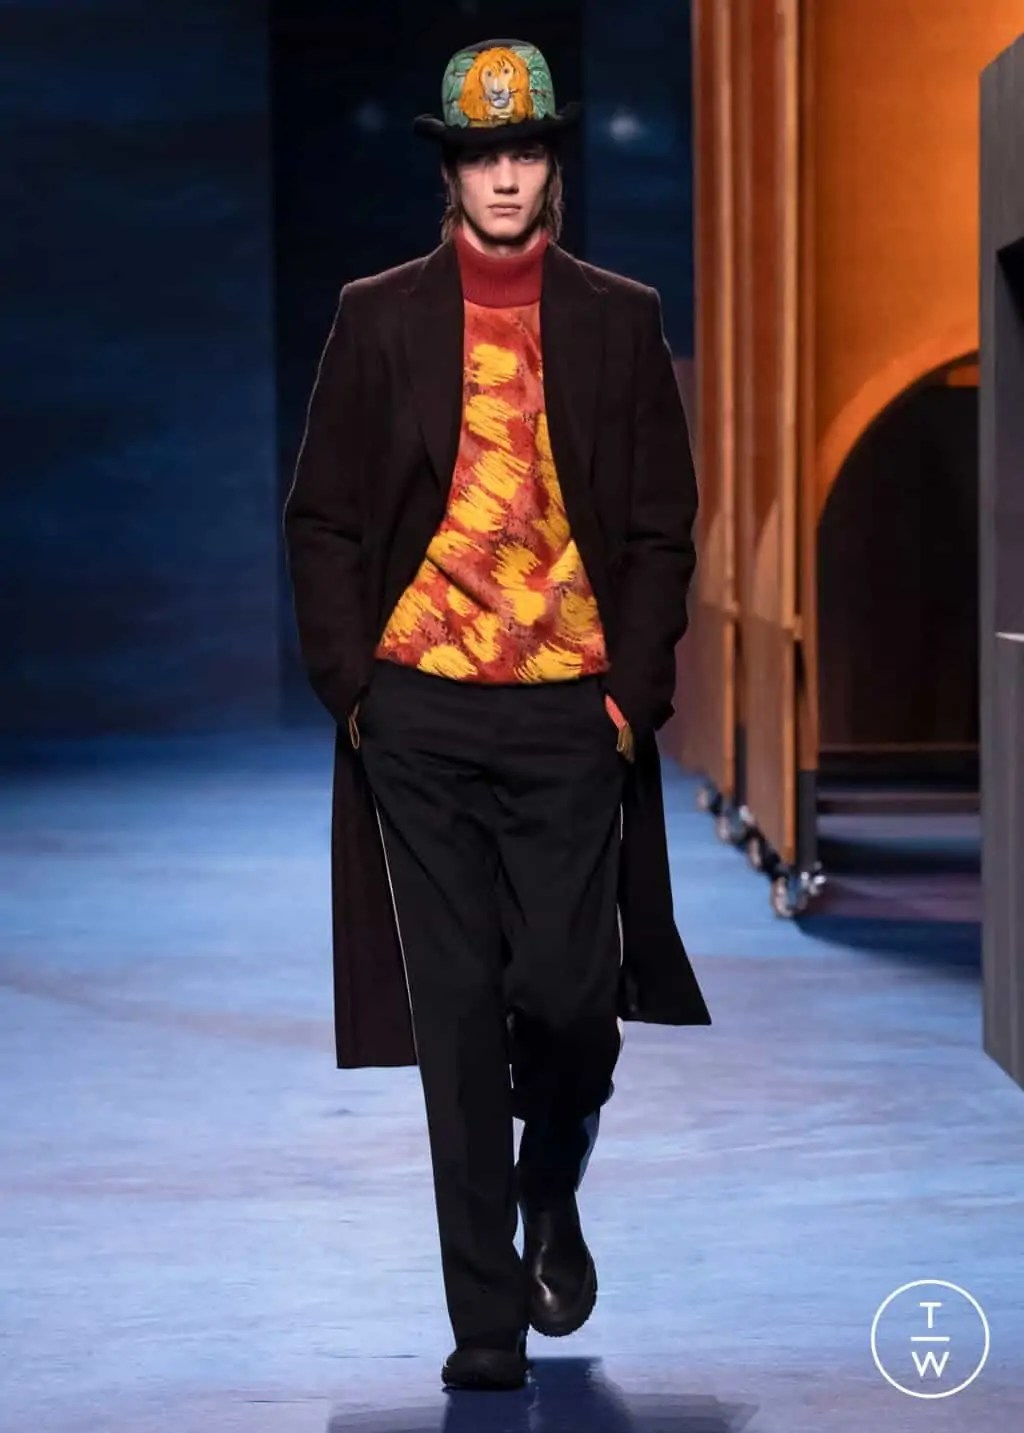 DIOR HOMME FALL/WINTER 2021 — Look 11 5